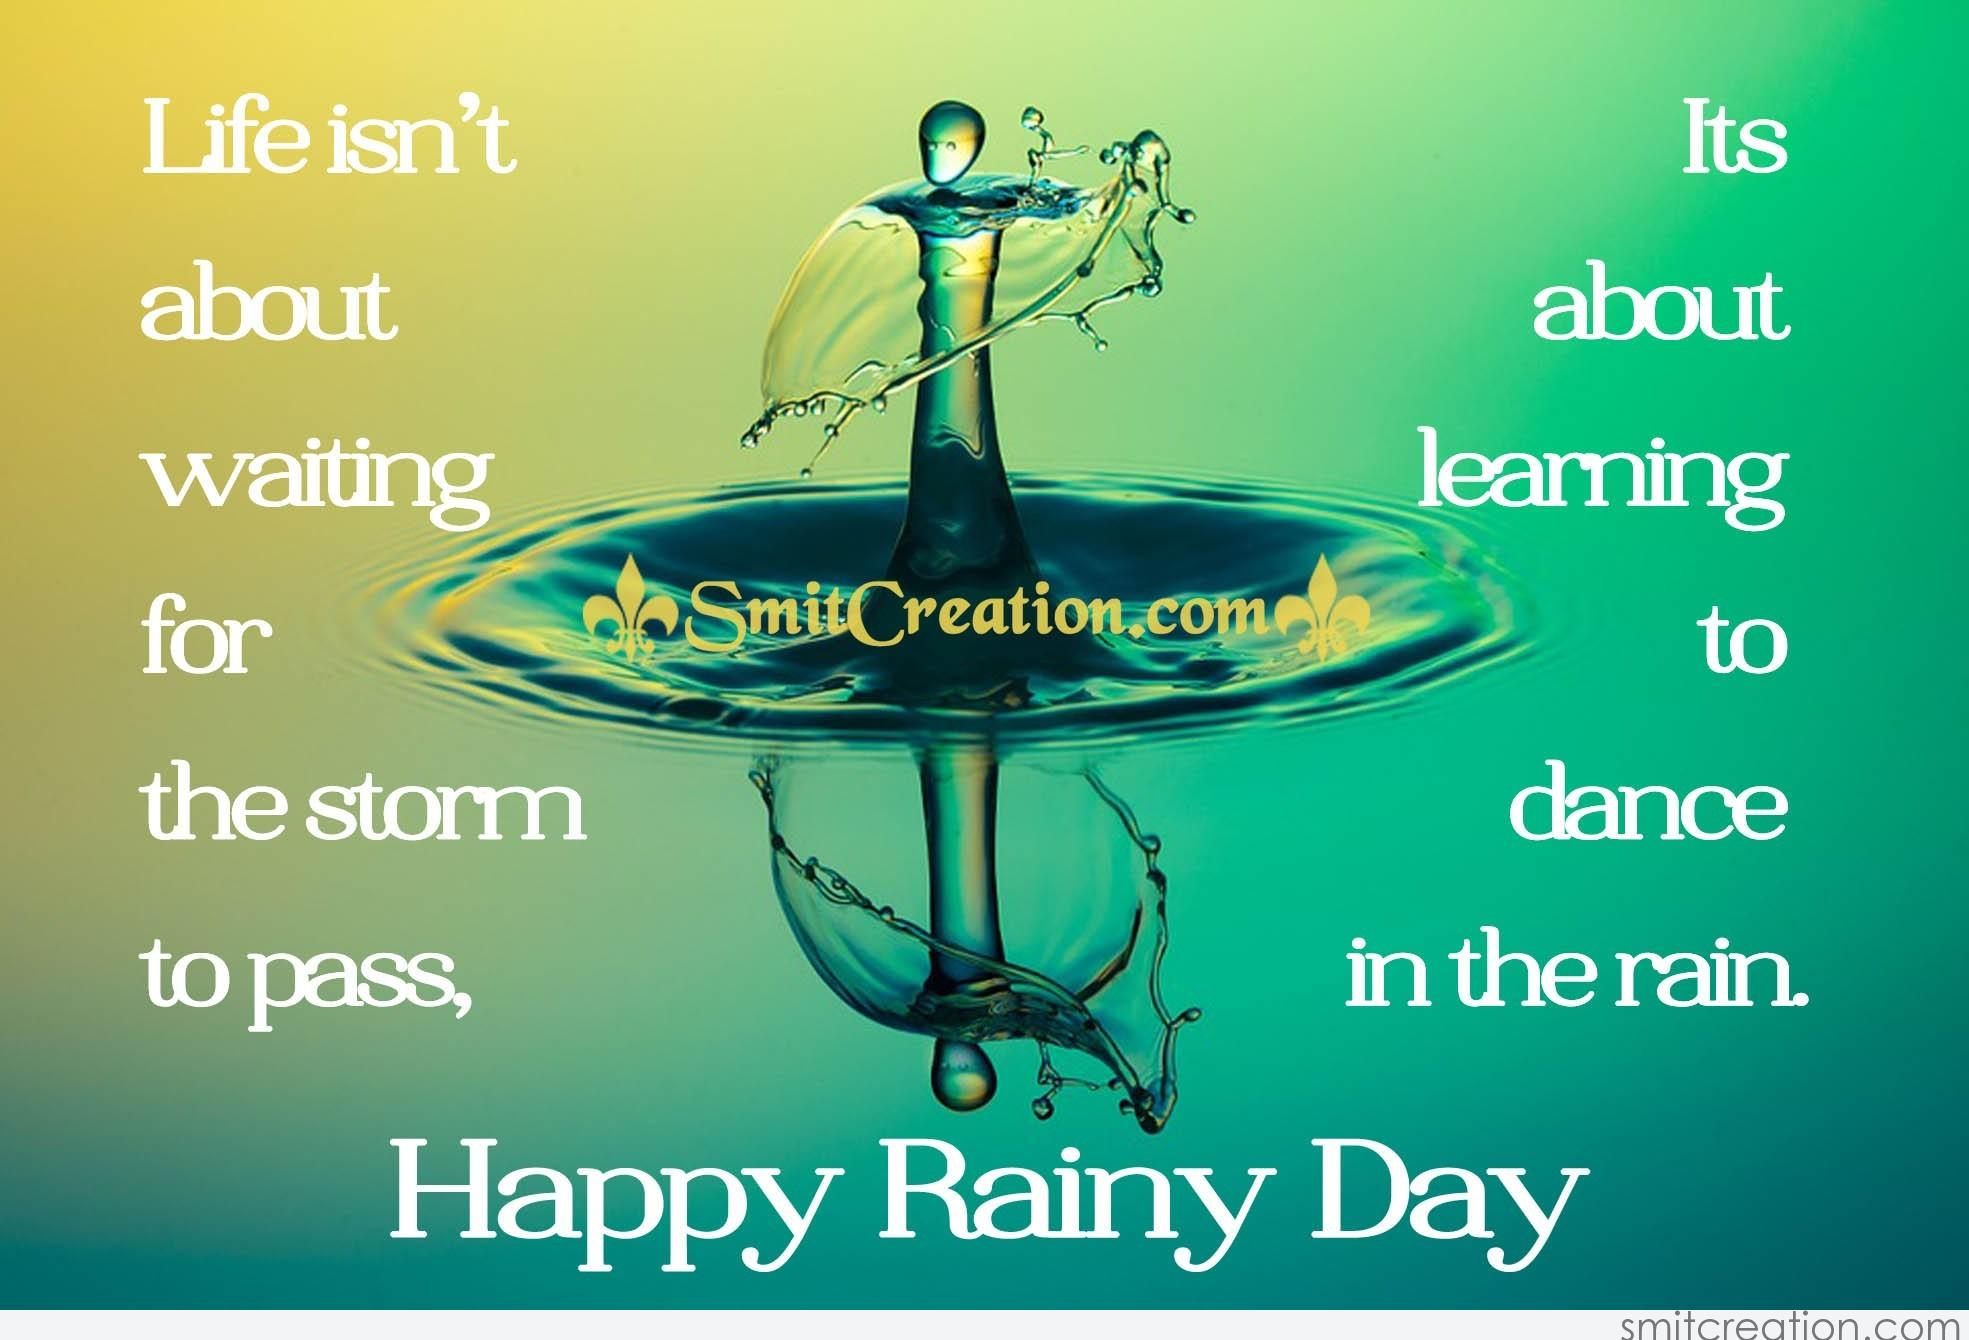 Life Is About Dance In The Rain